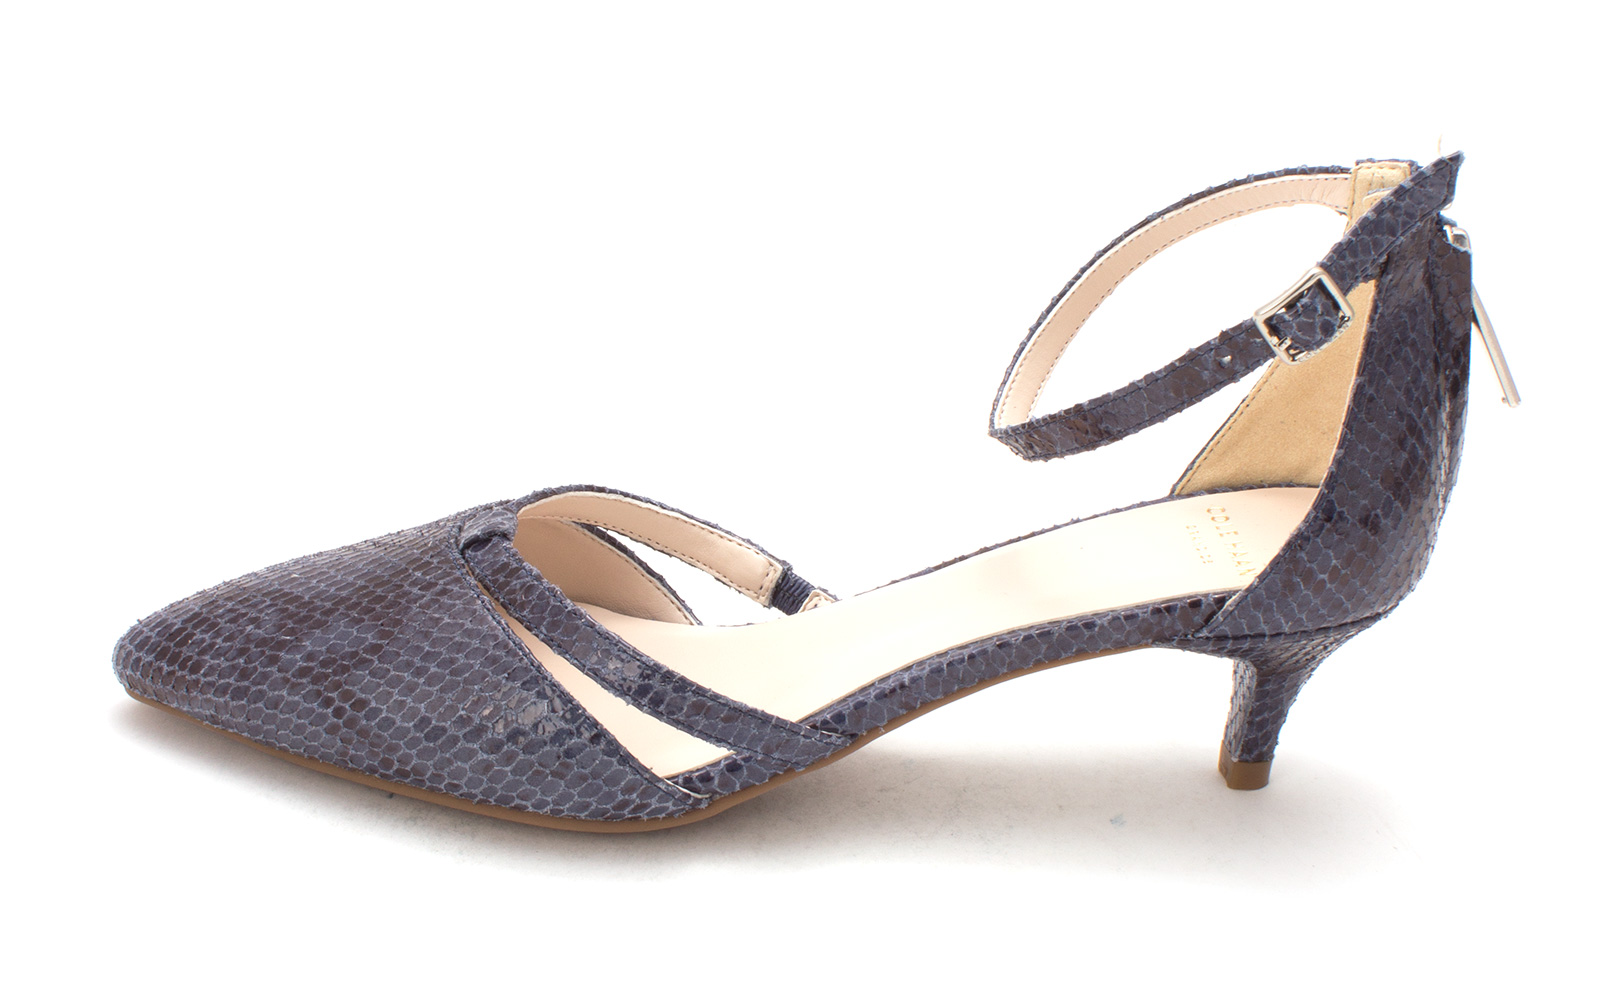 Cole Haan Womens 14A4020 Rubber Pointed Toe Ankle Strap Washed Indigo Size 6.0